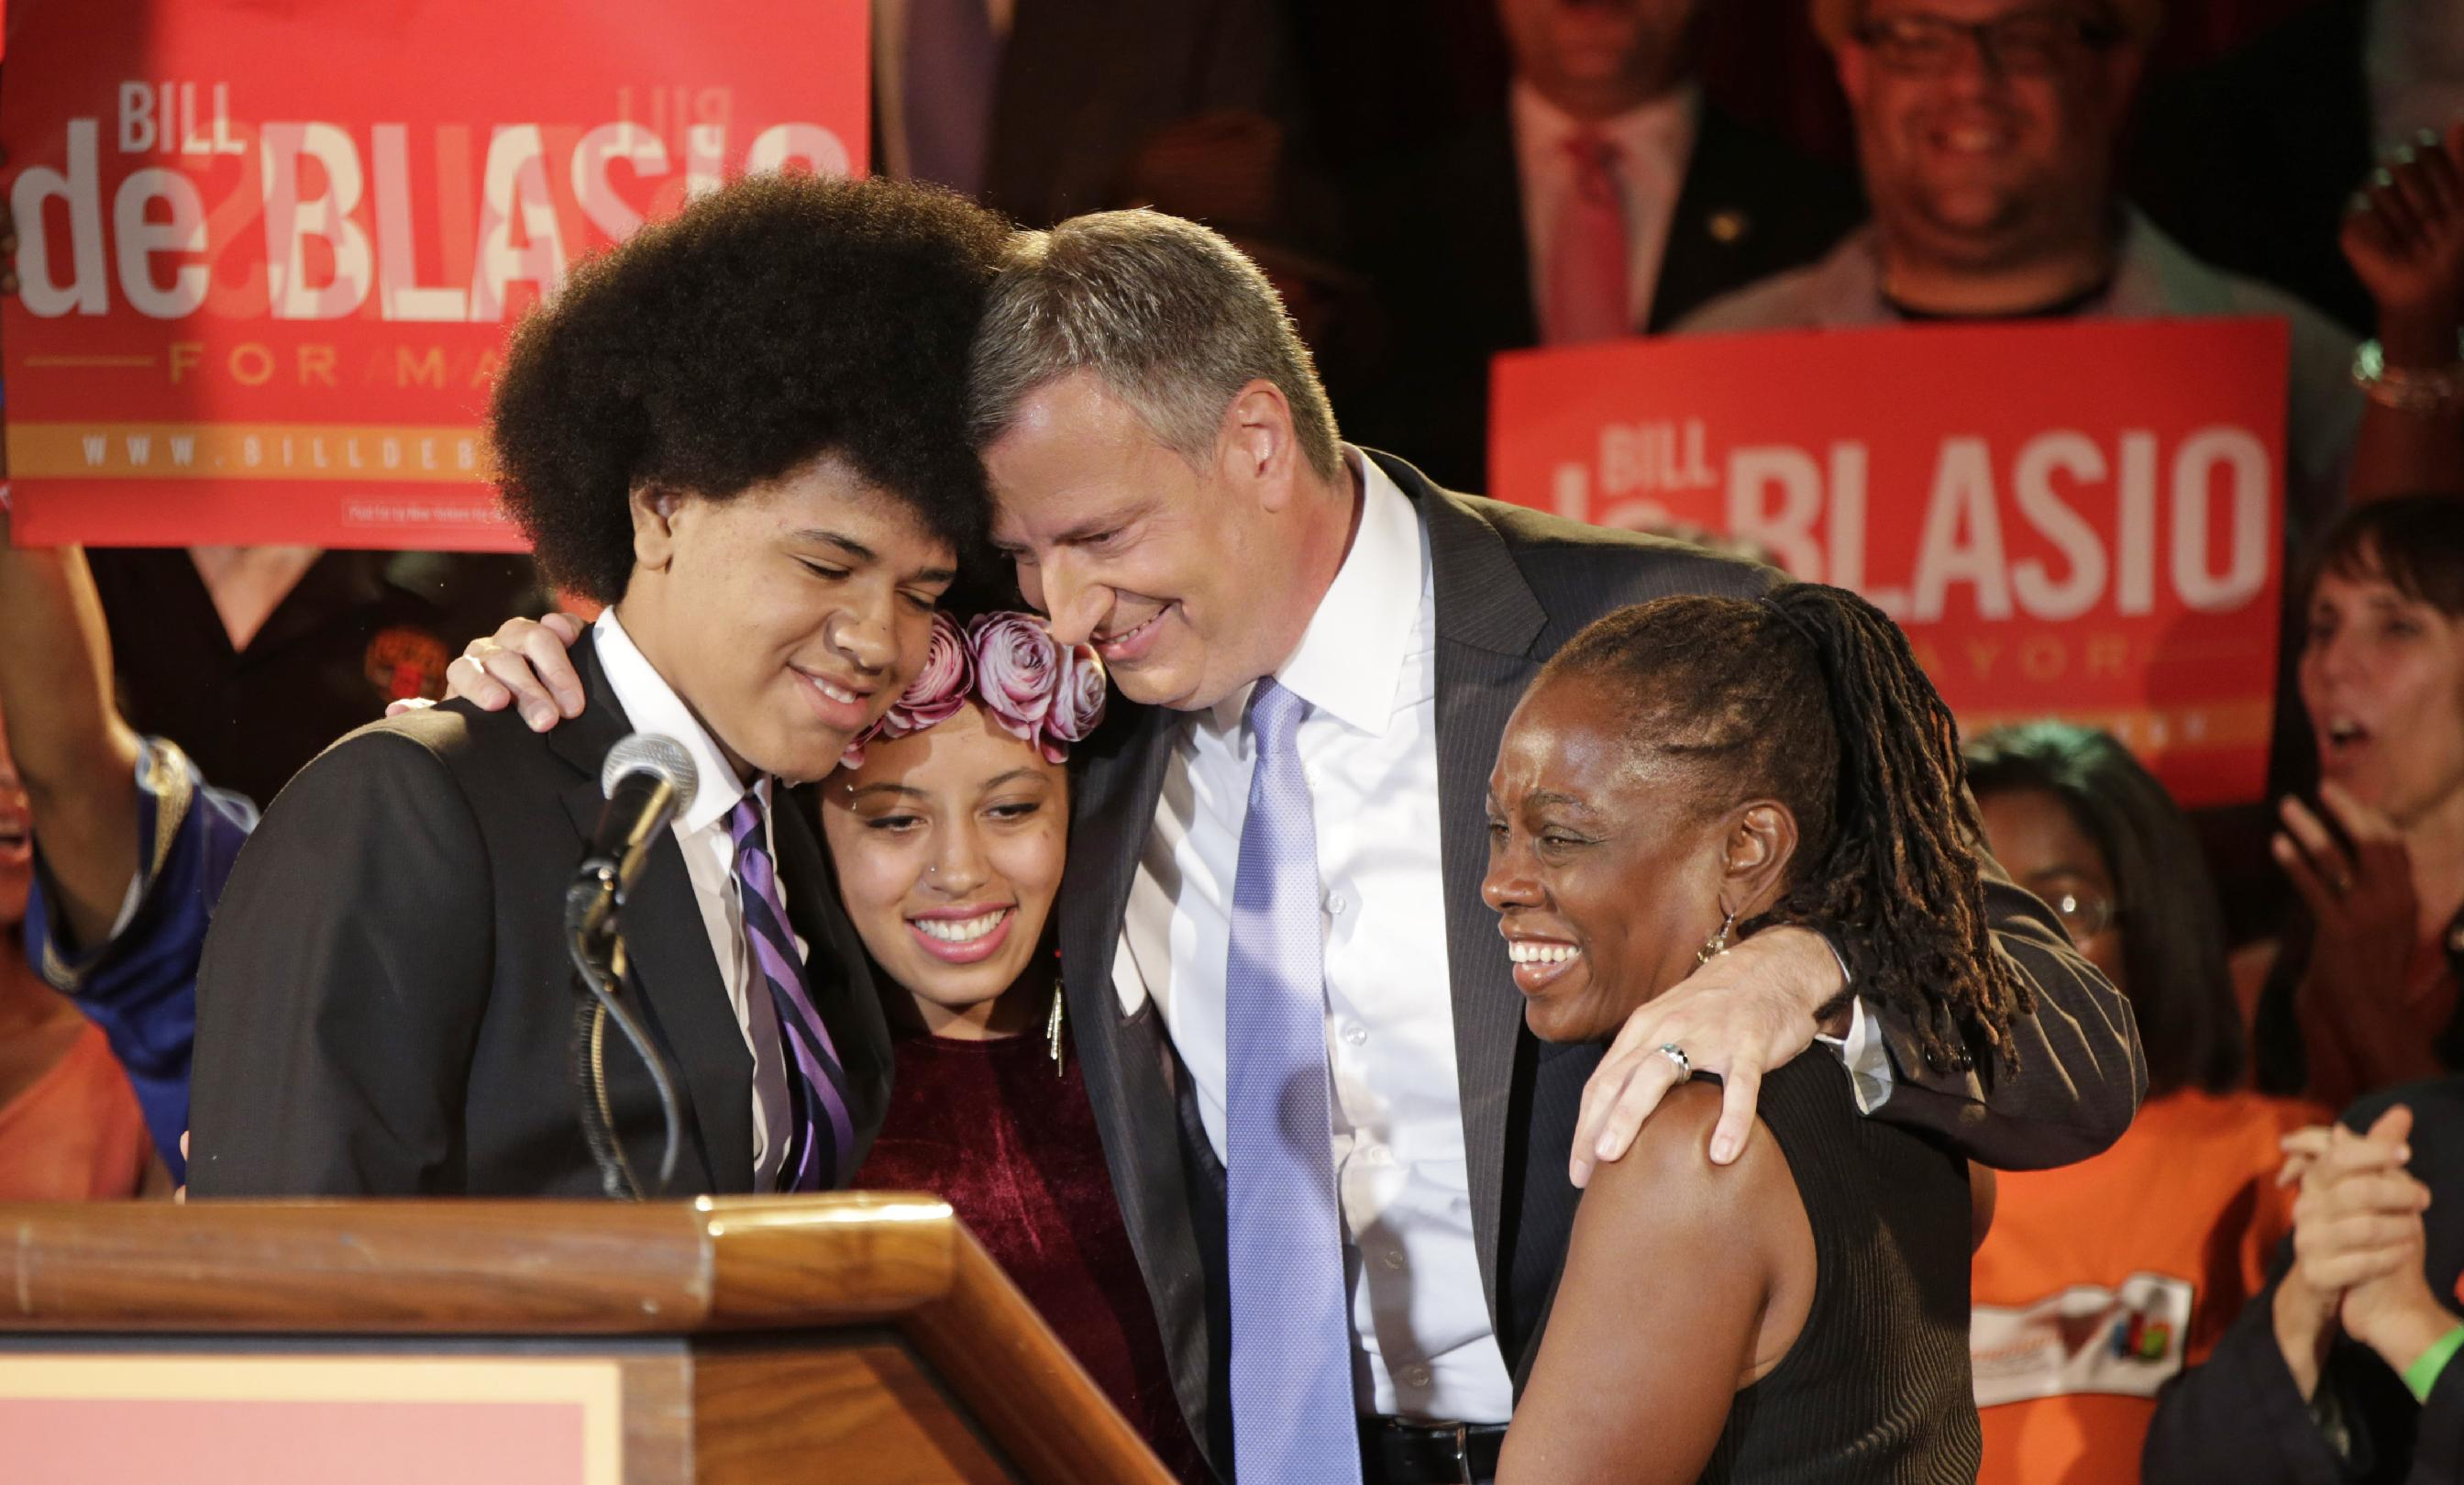 New York City Democratic Mayoral hopeful Bill De Blasio embraces his son Dante, left, daughter Chiara, second from left, and wife Chirlane, right, after addressing supporters at his election headquarters after polls closed in the city's primary election Wednesday, Sept. 11, 2013, in New York. (AP Photo/Kathy Willens)